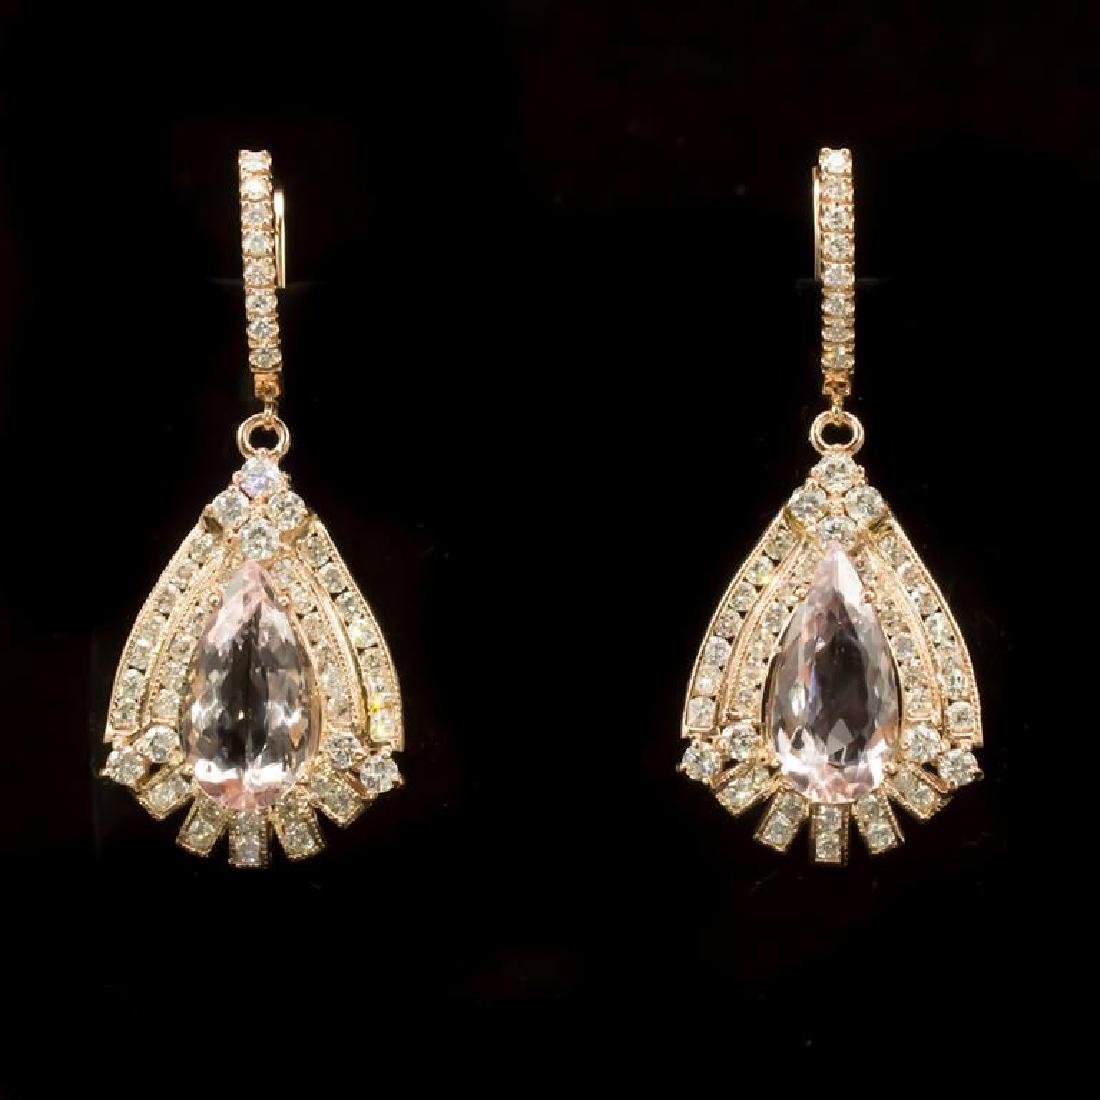 14K Gold 13.6ct Morganite 6.73ct Diamond Earrings